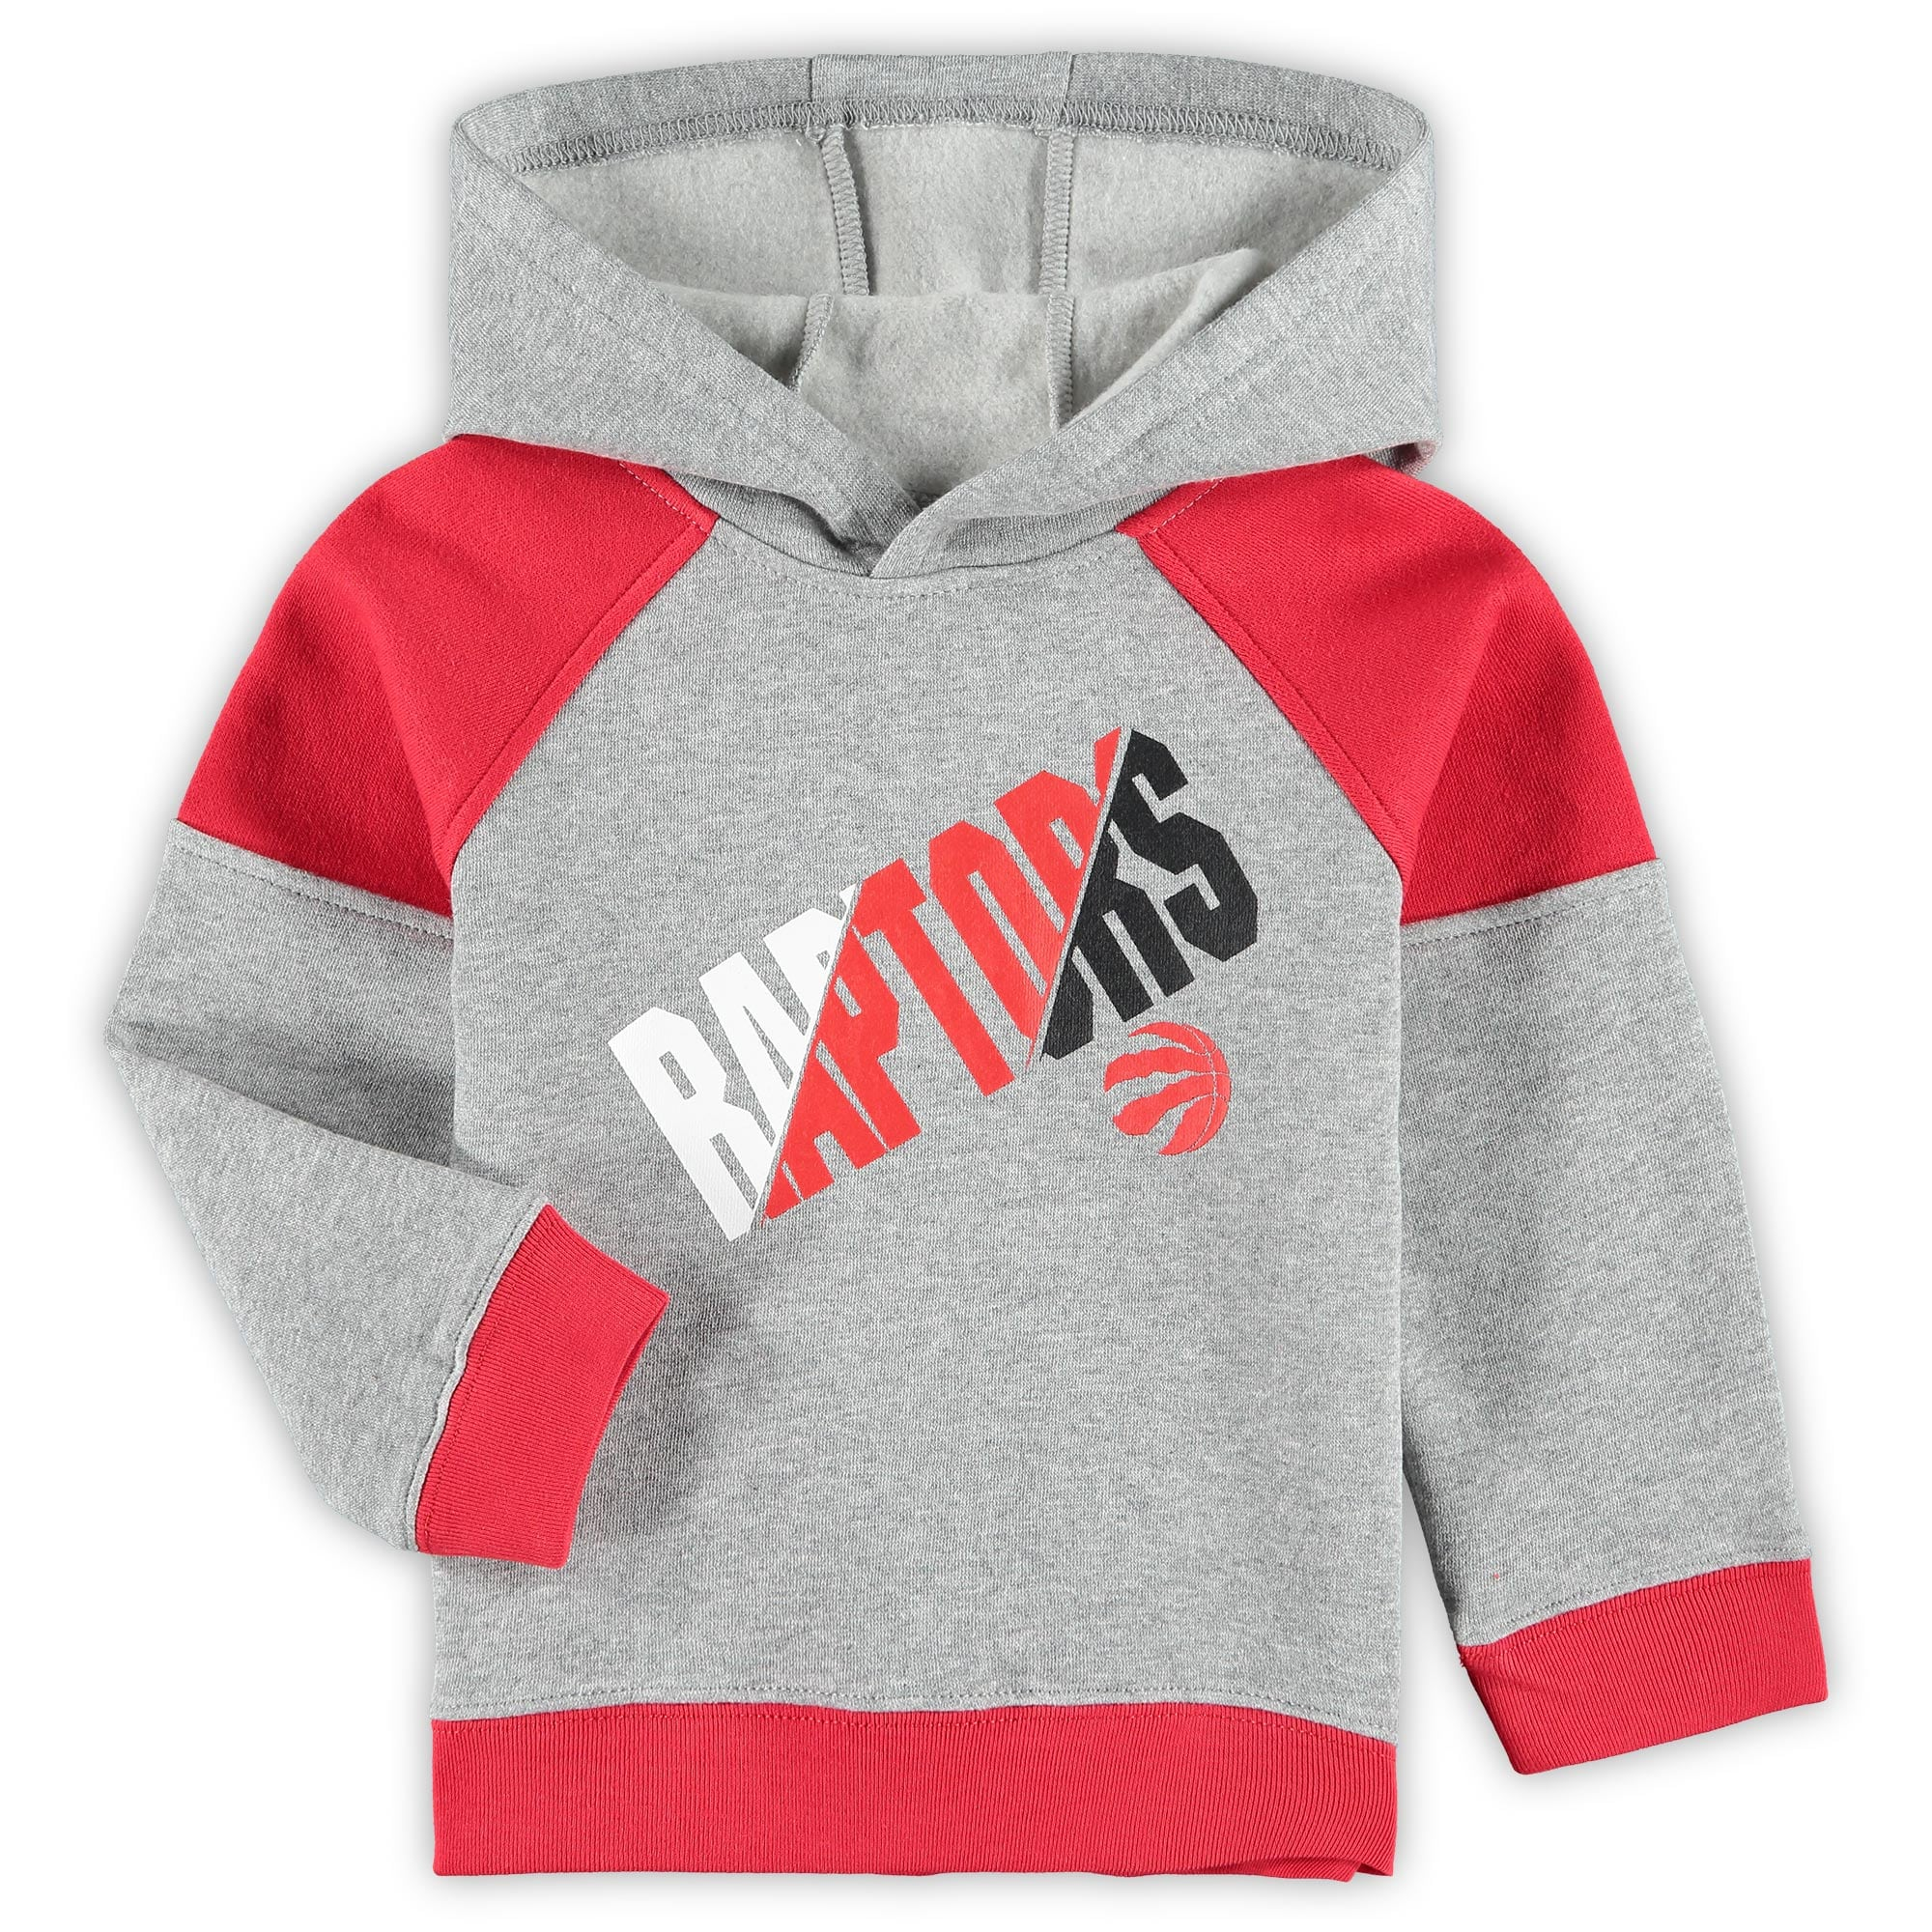 Toronto Raptors Toddler Sideline Fleece Pullover Hoodie - Heathered Gray